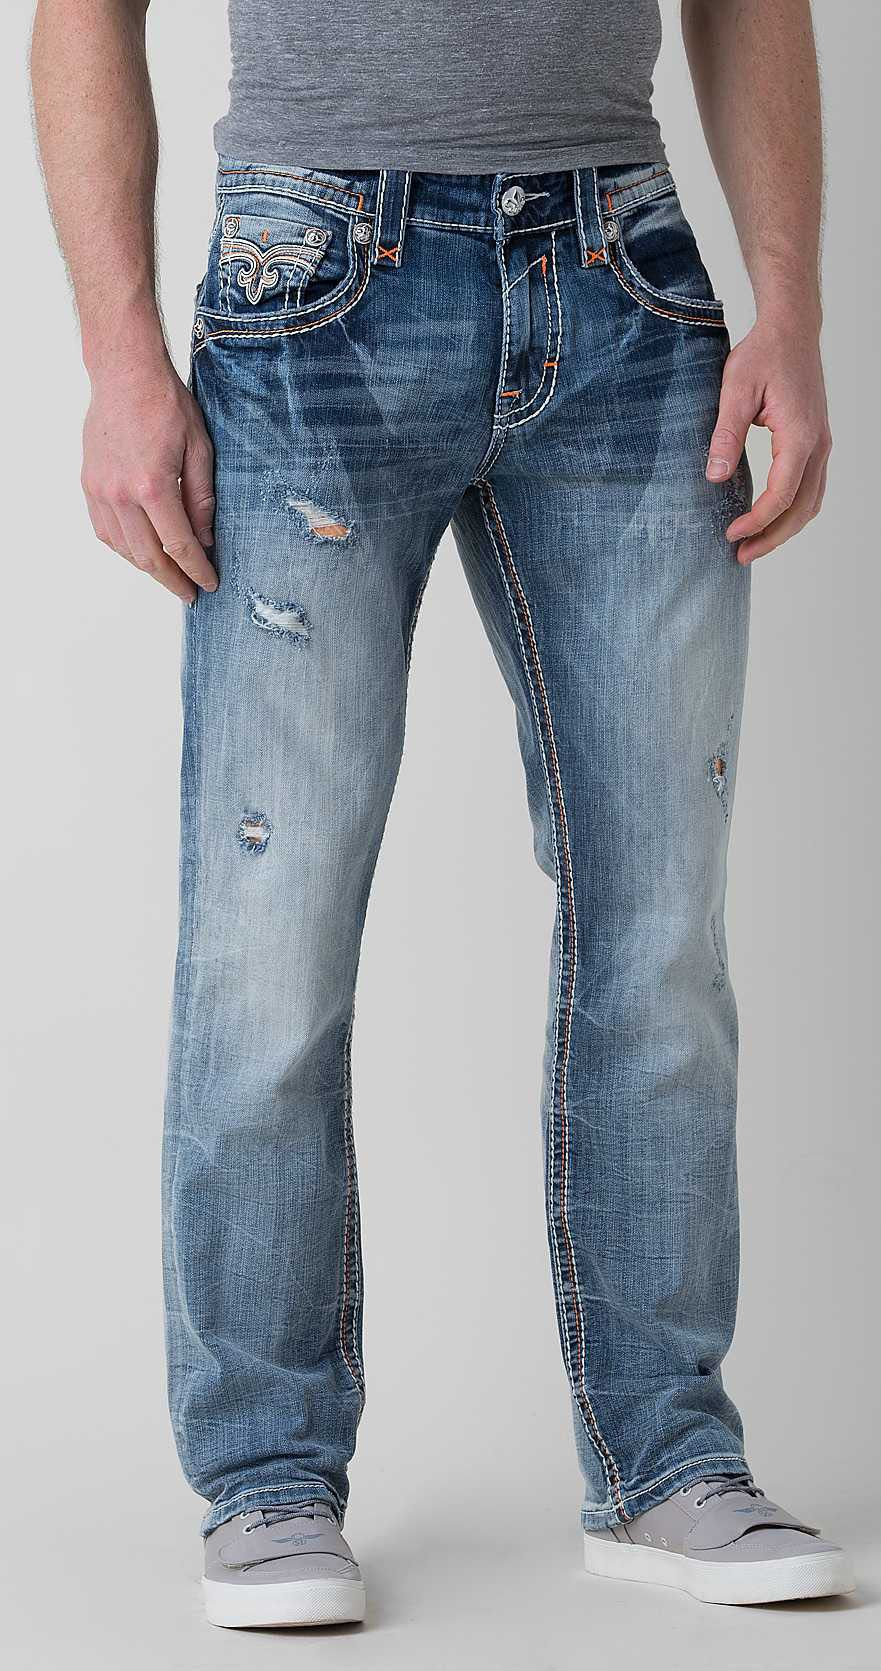 How to rock wear revival jeans best photo